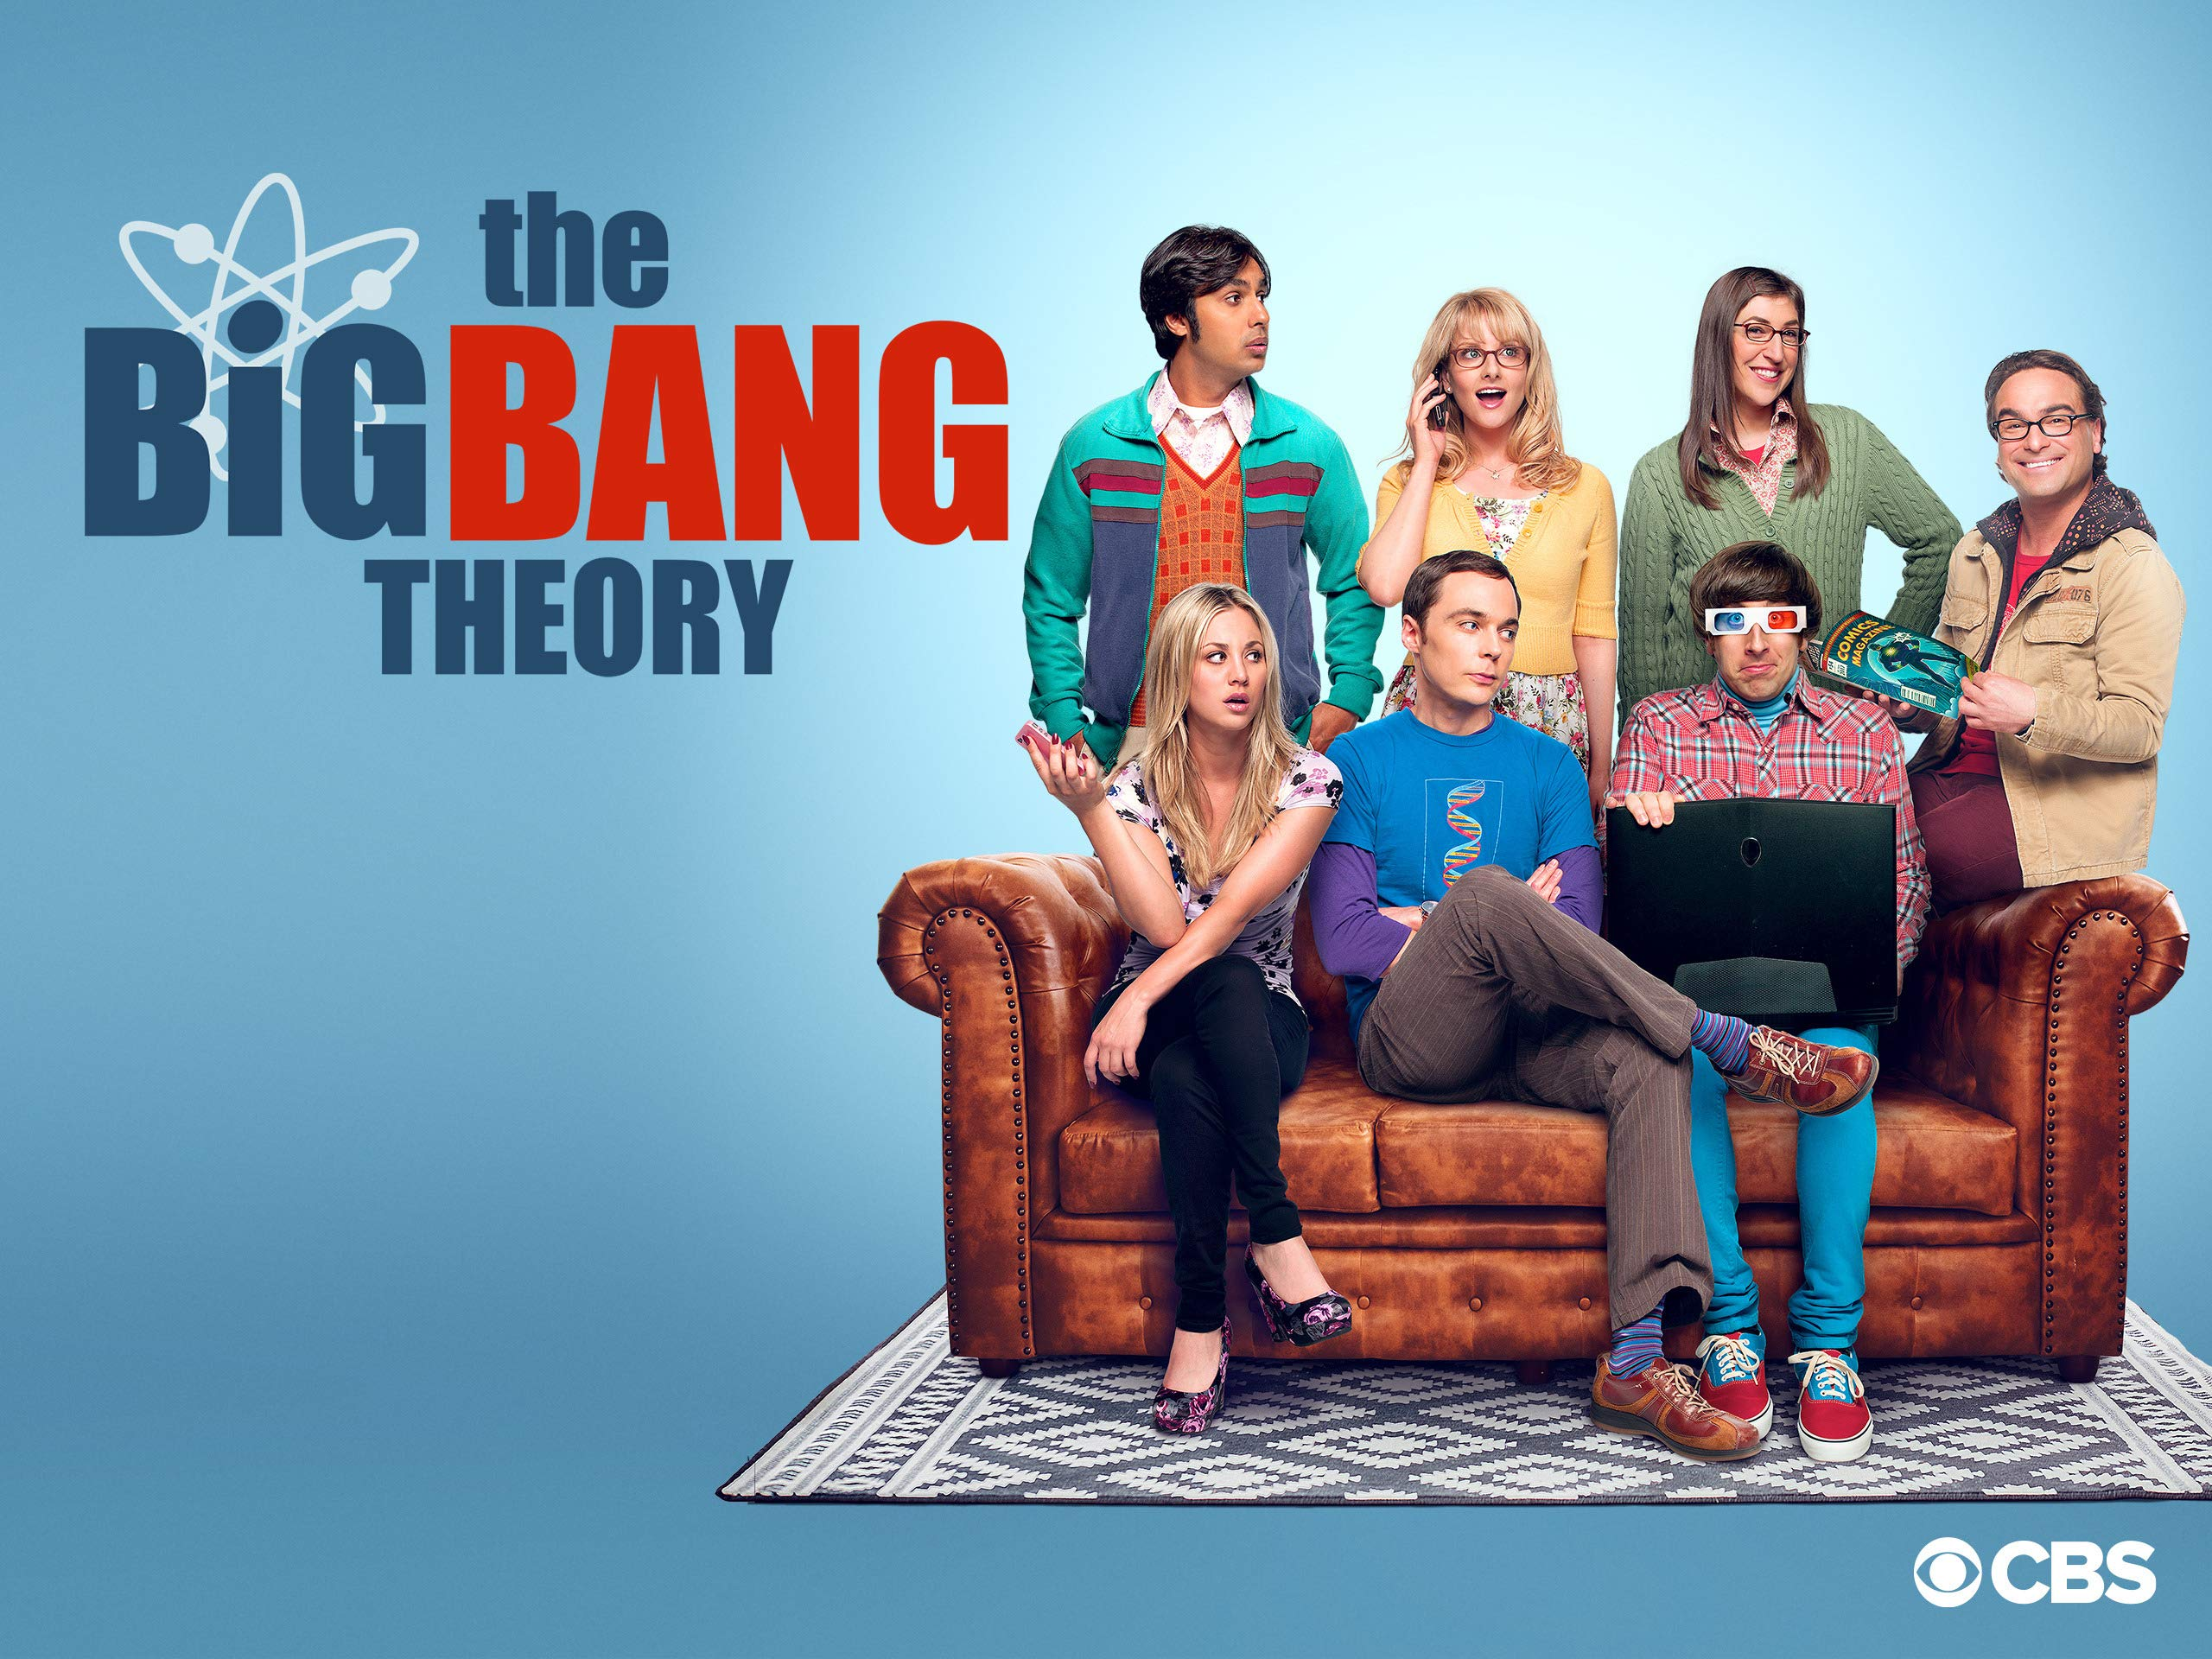 The big bang theory s04e12 720p hdtv x264 immerse download ...